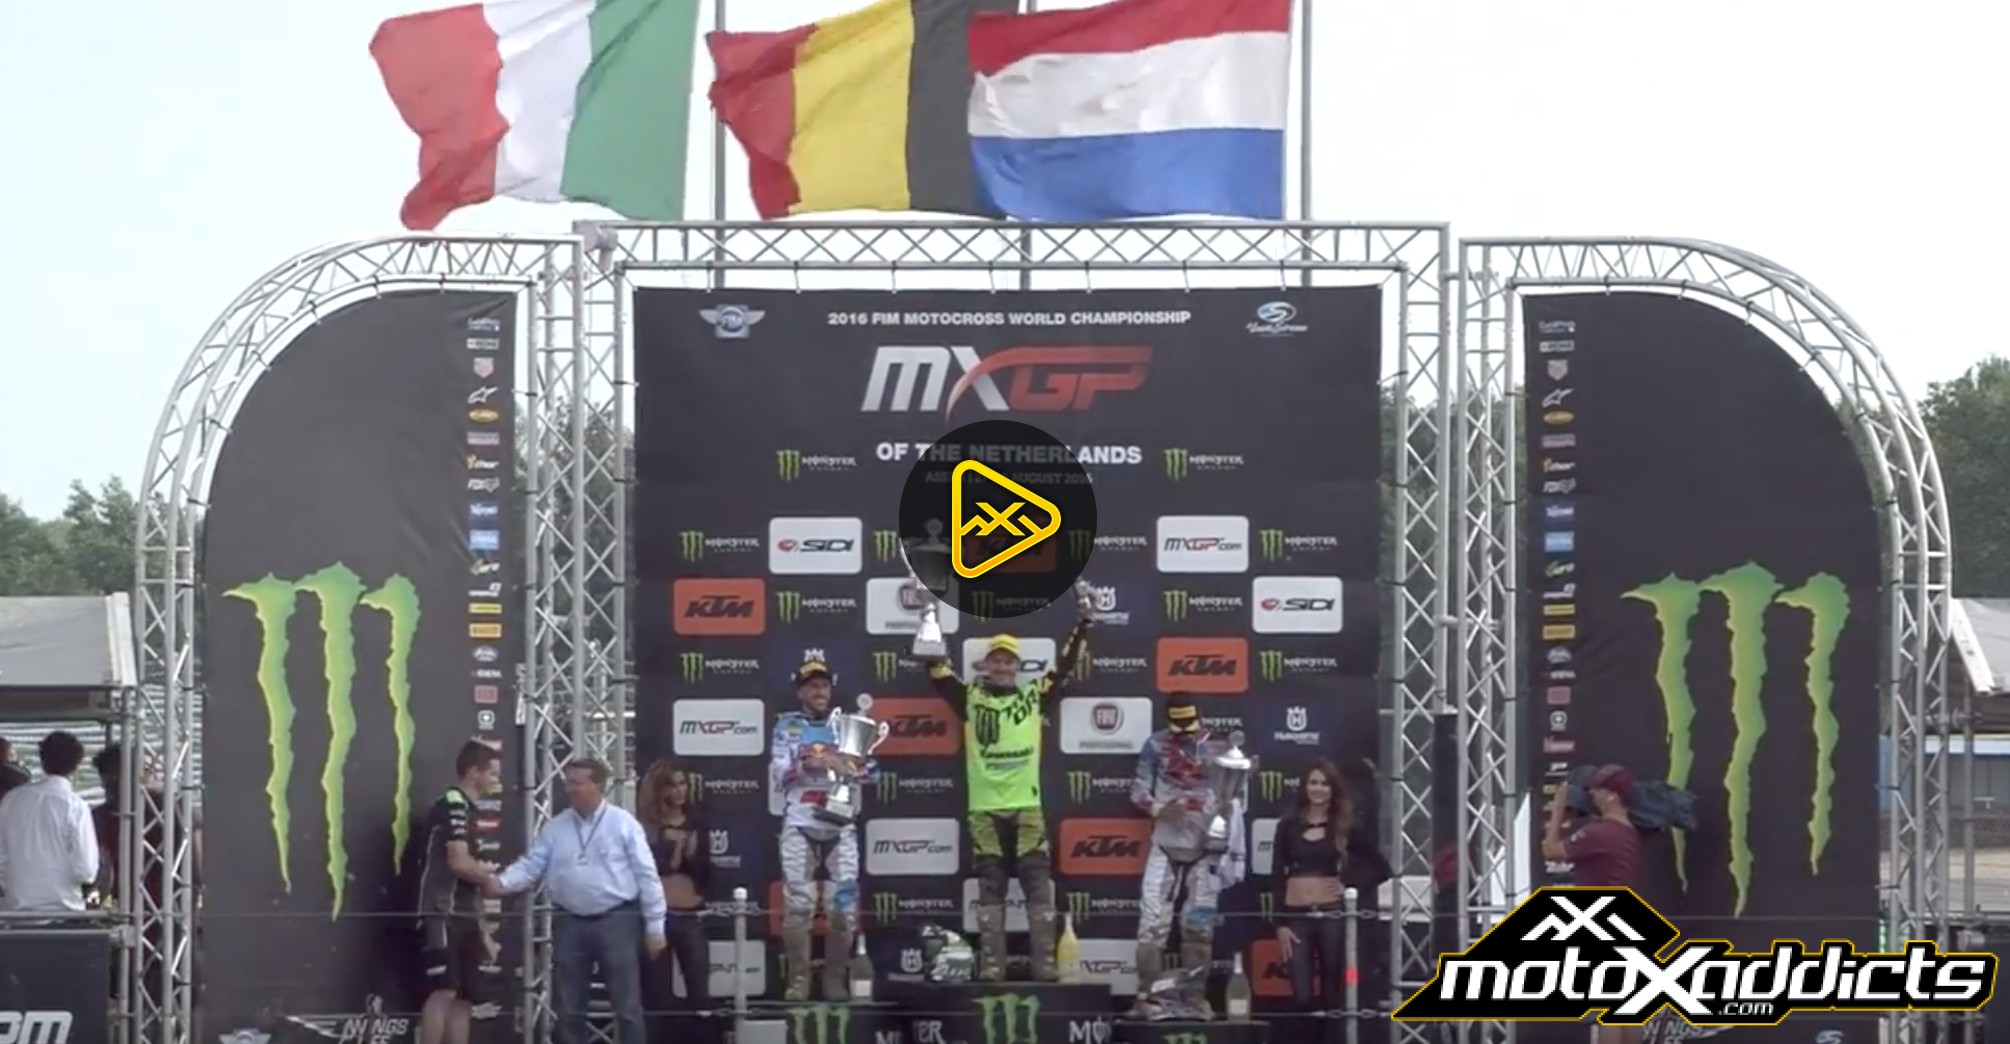 MXGP & MX2 Highlights from 2016 MXGP of the Netherlands